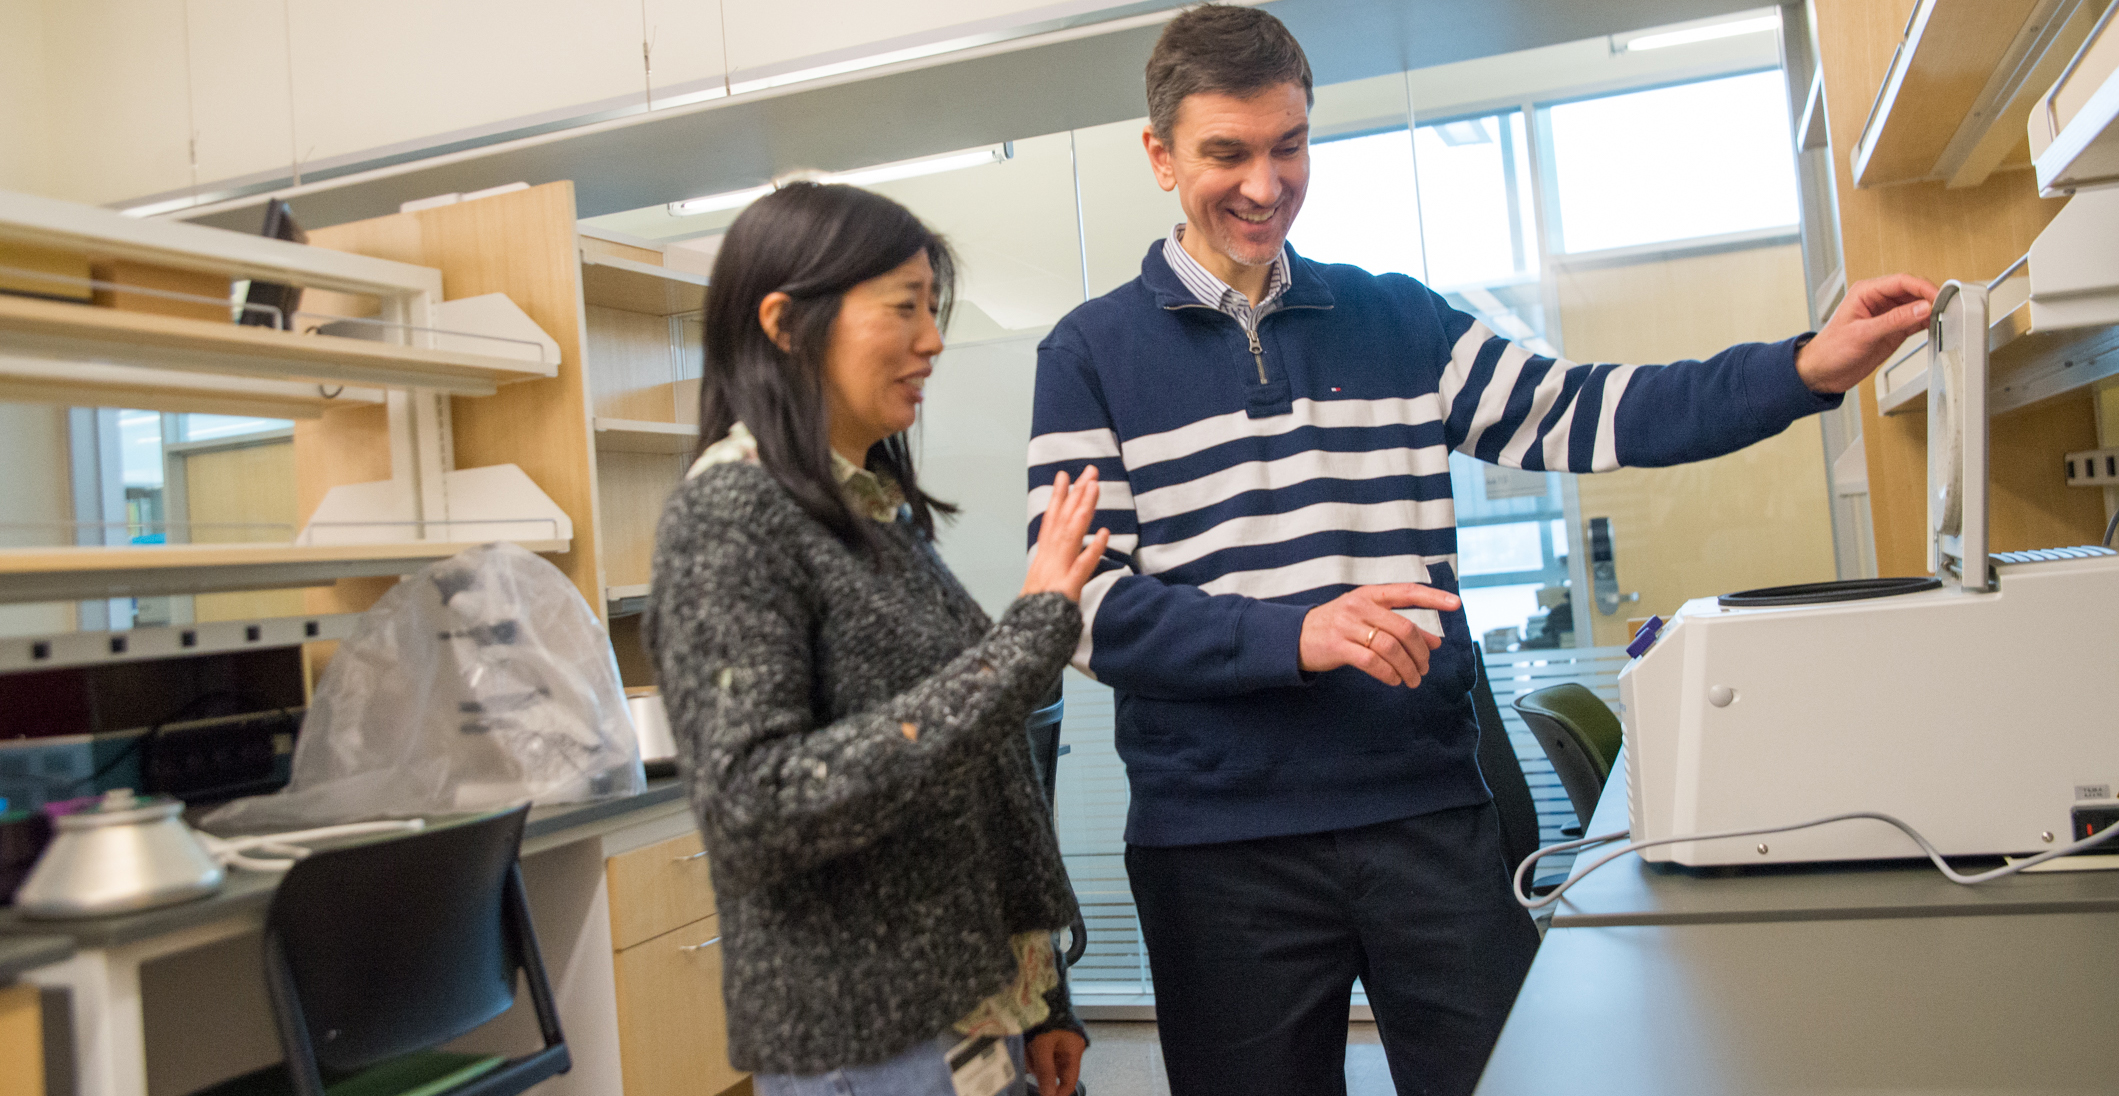 Linda Huang and Alexey Veraksa examine equipment in the ISC